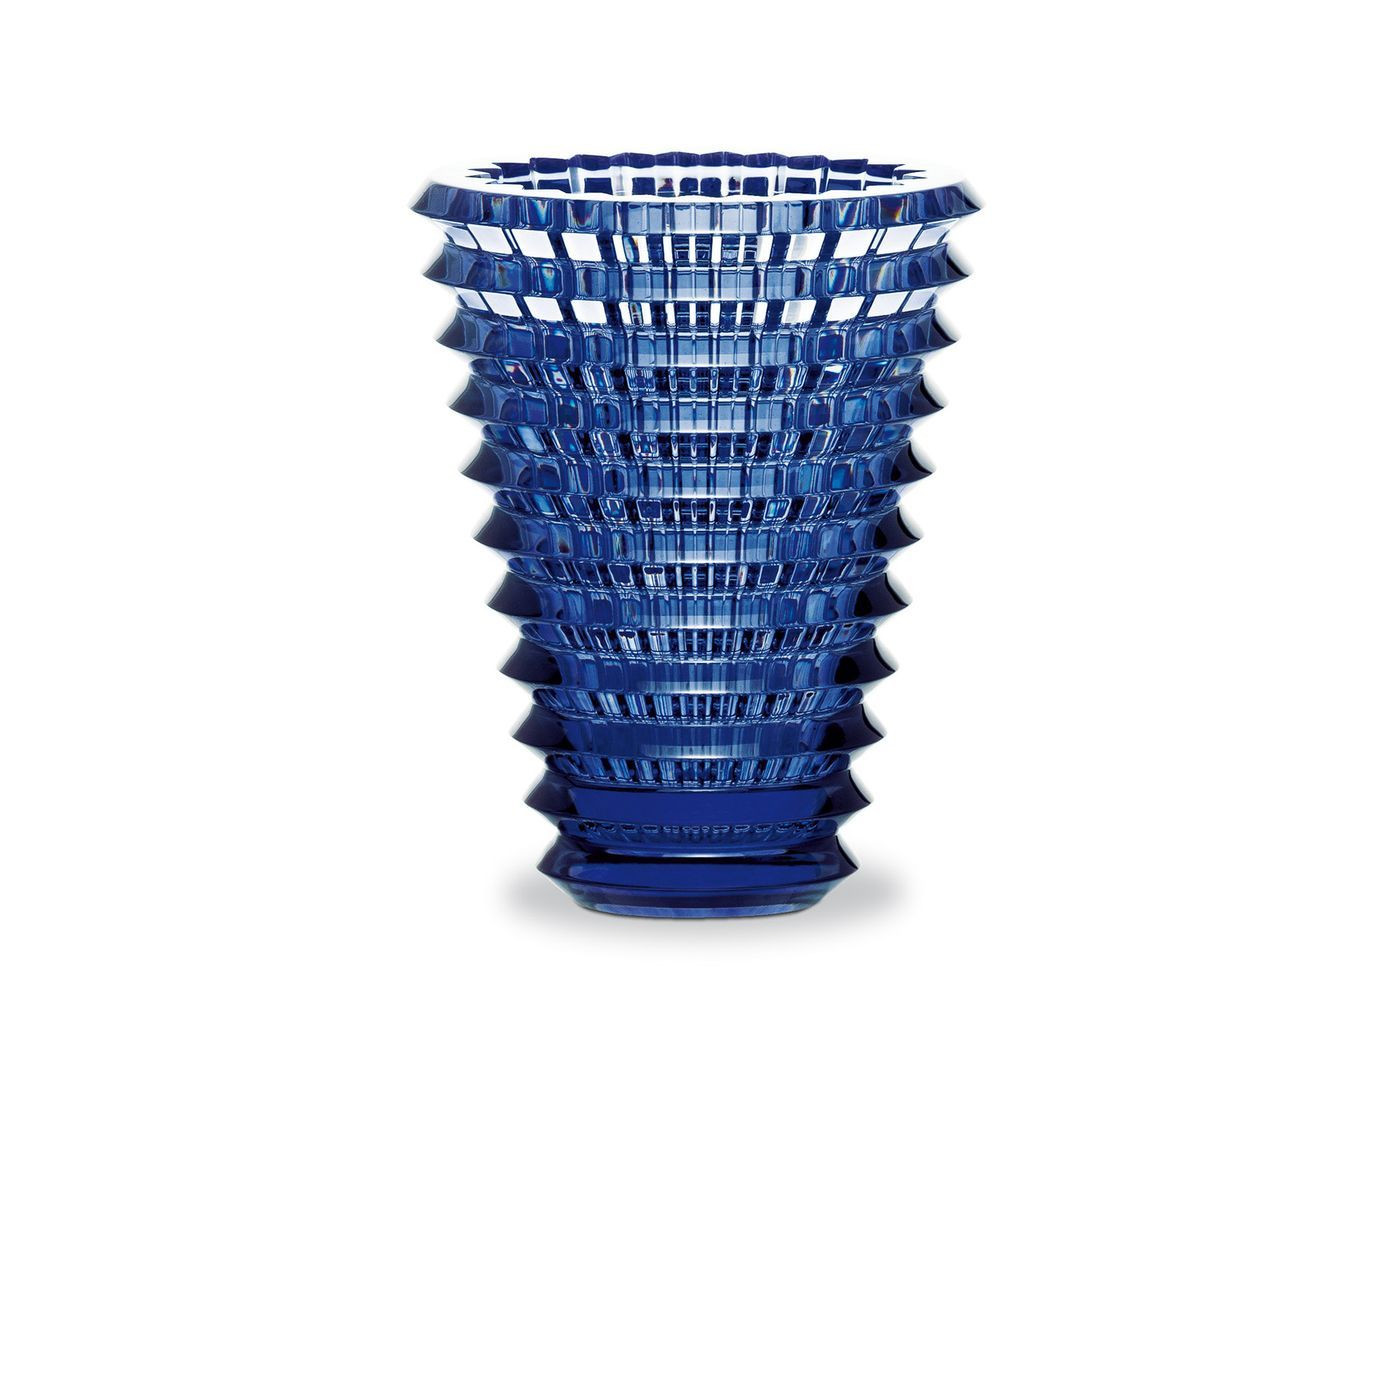 baccarat blue crystal vase of eye vase baccarat design pinterest throughout eye vase baccarat